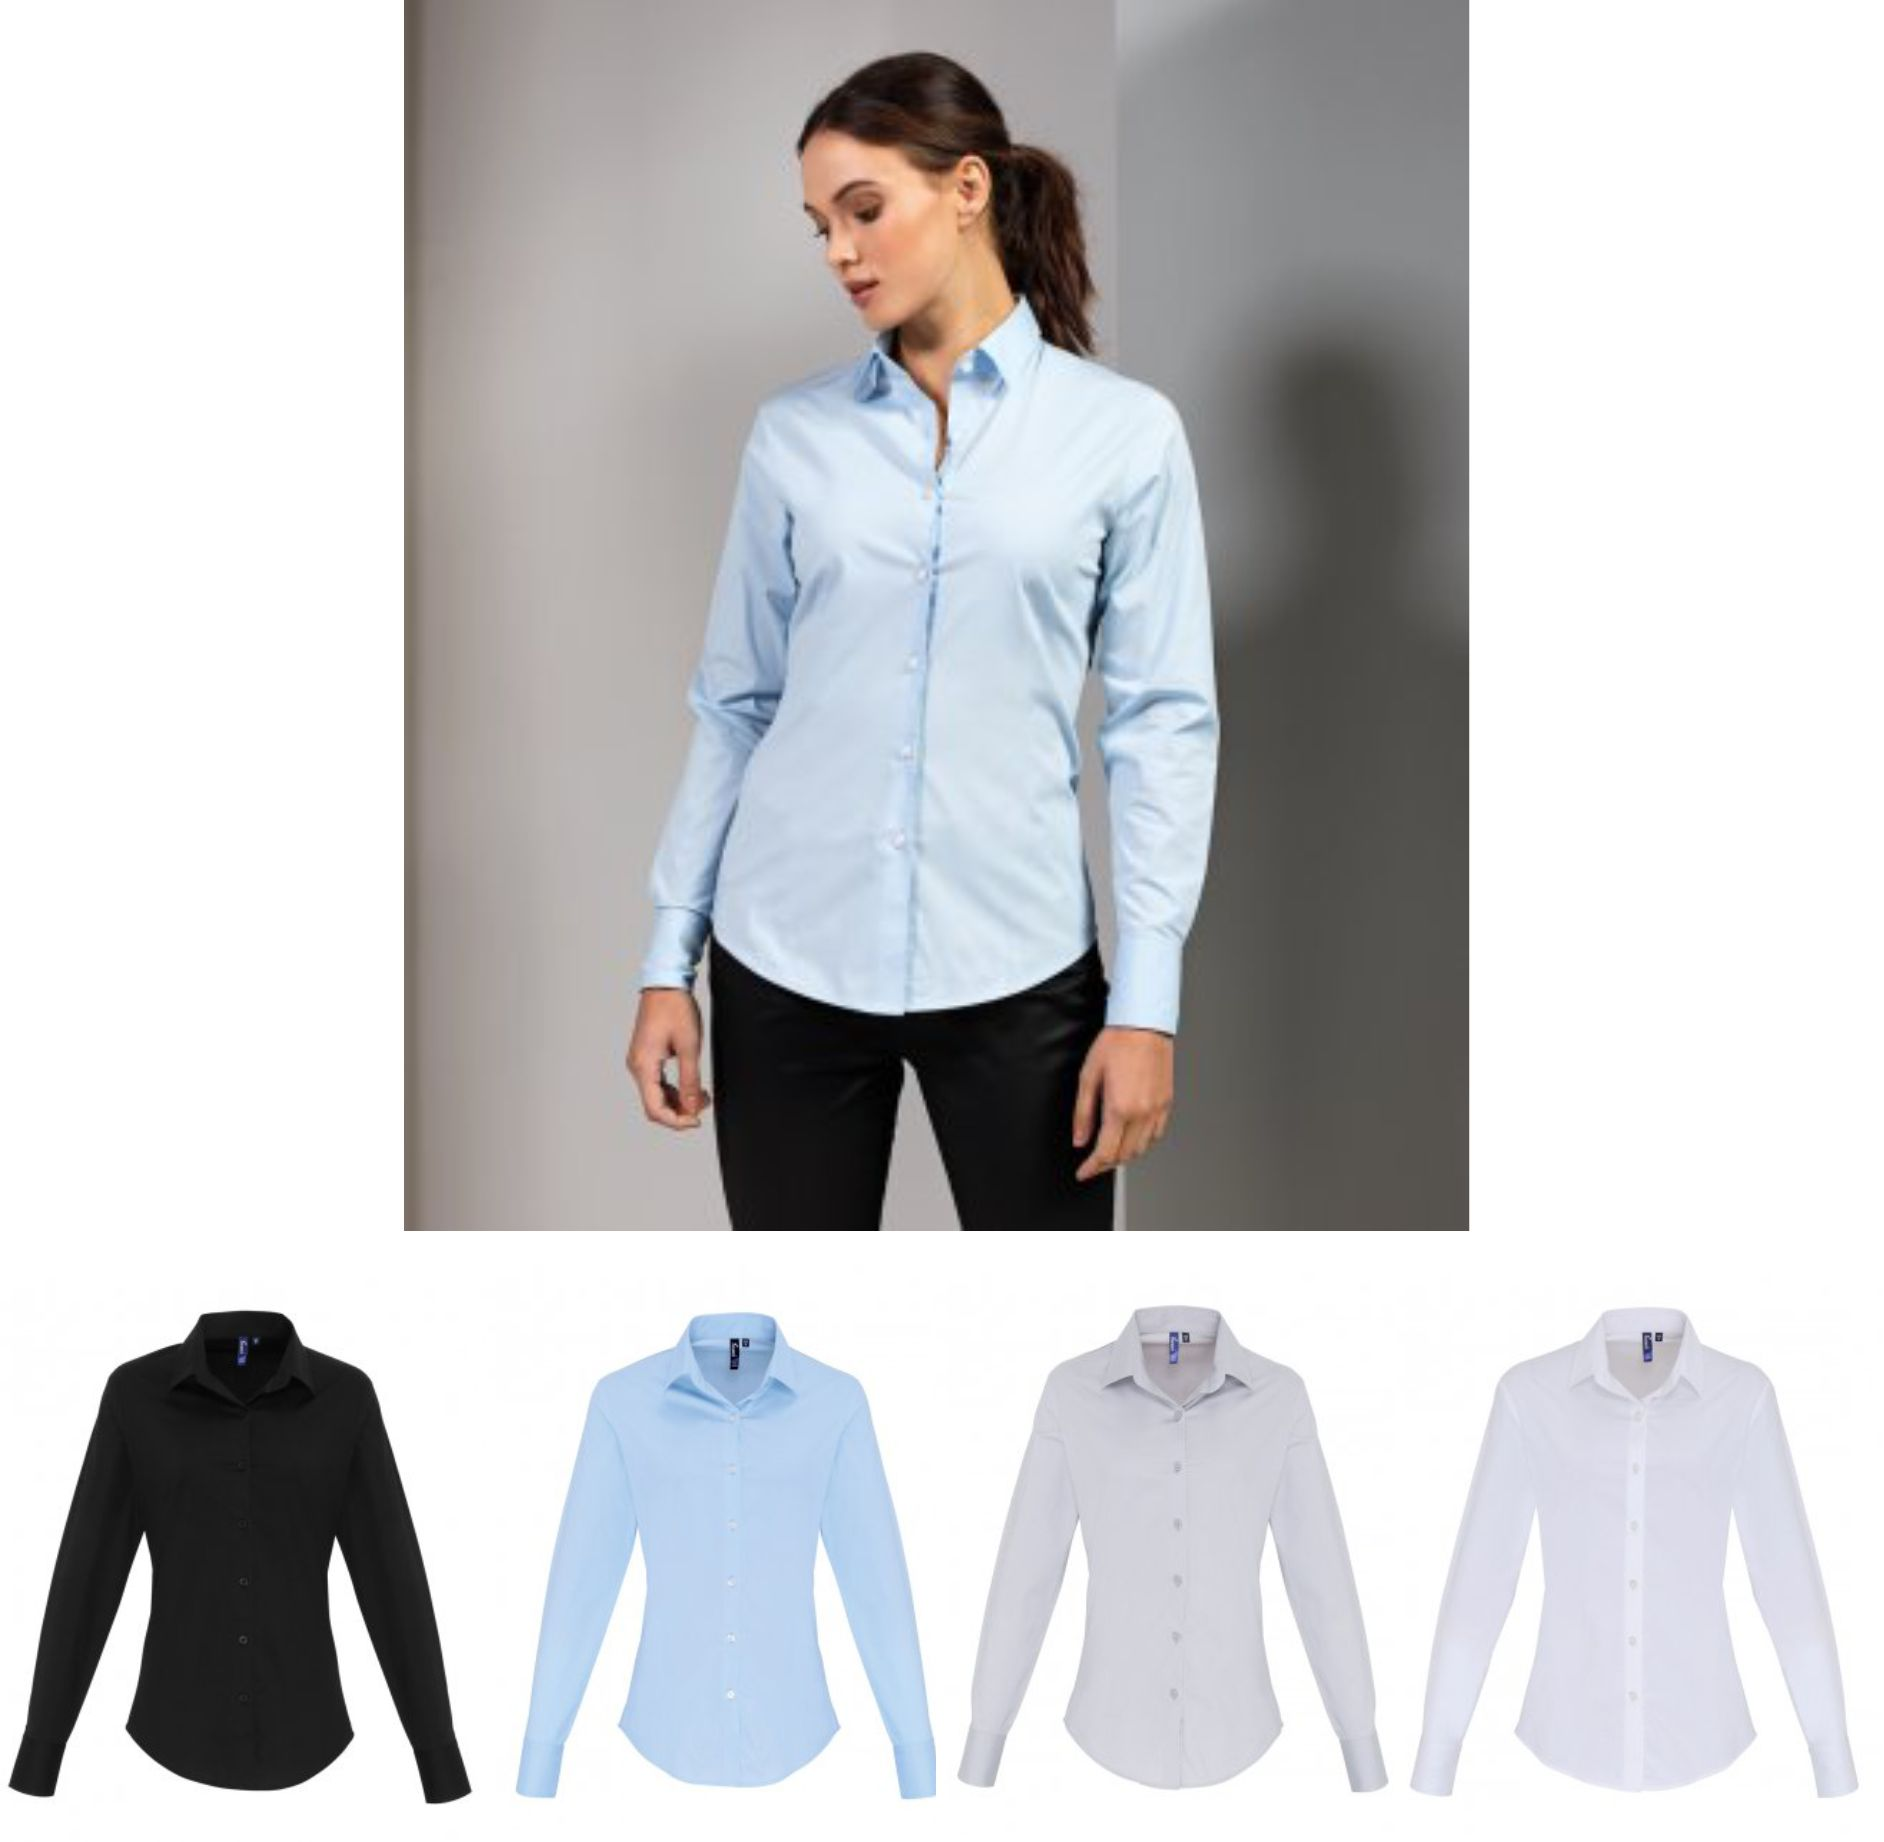 Premier PR344 Ladies Long Sleeve Stretch Fit Poplin Shirt